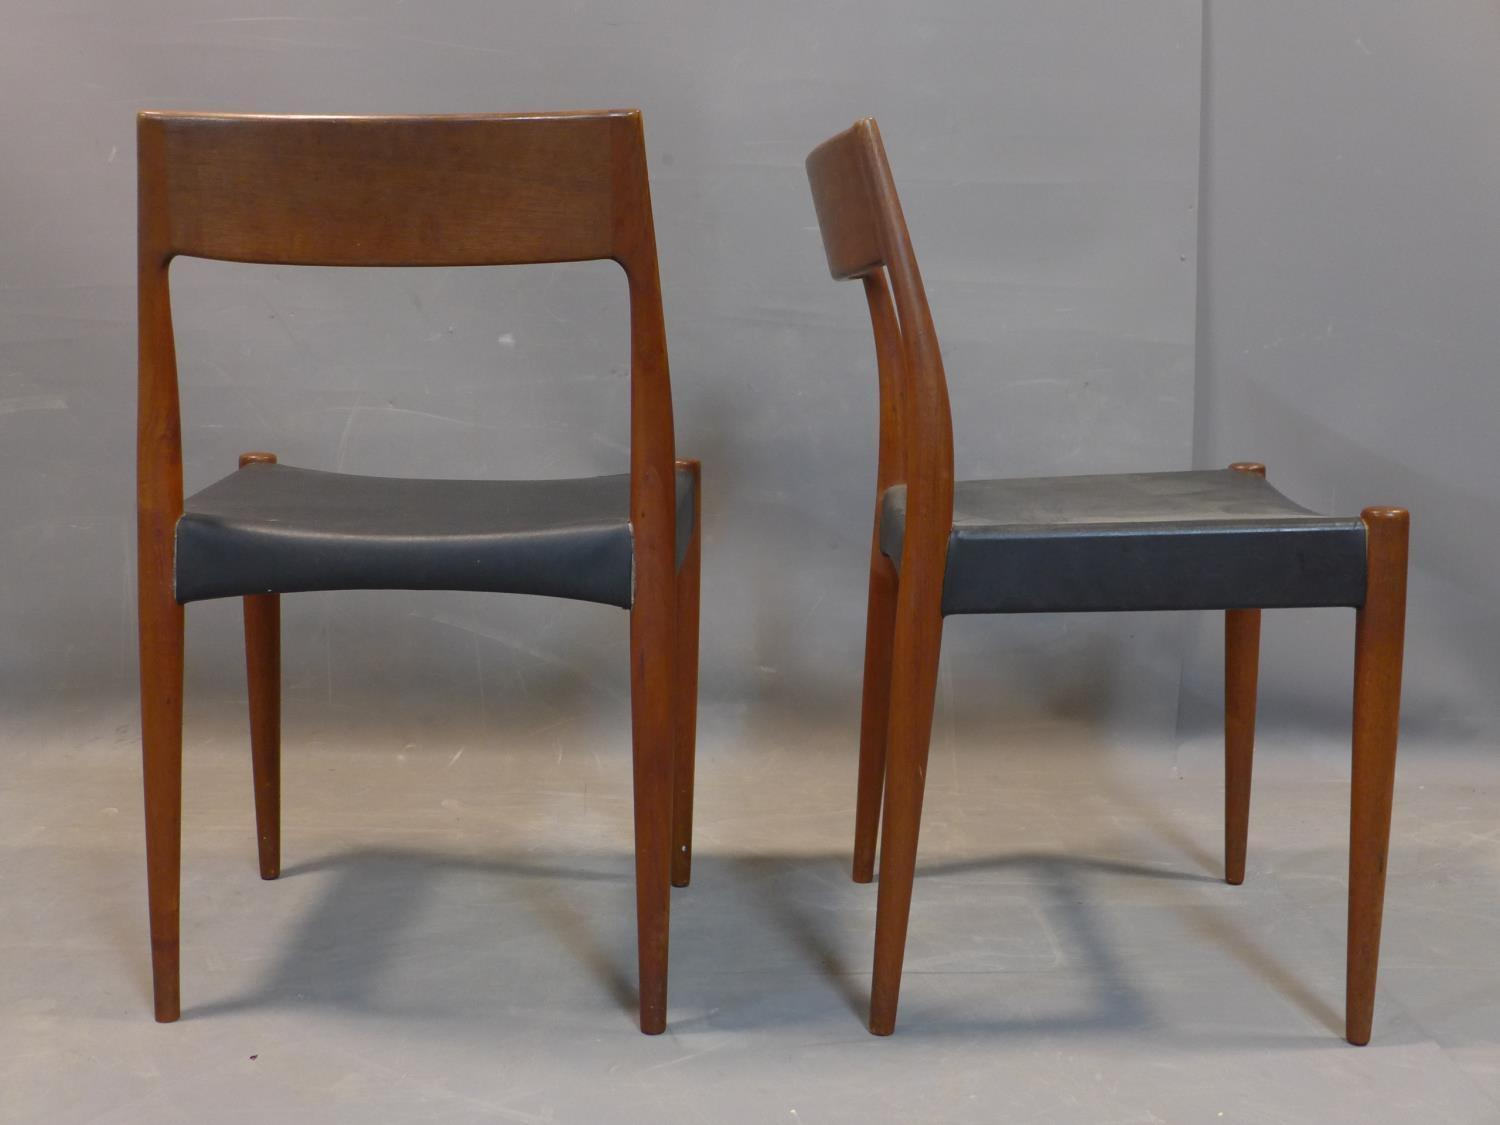 Lot 288 - A set of six mid 20th century Danish teak chairs by Mogens Kold (MK), c.1960, possibly designed by